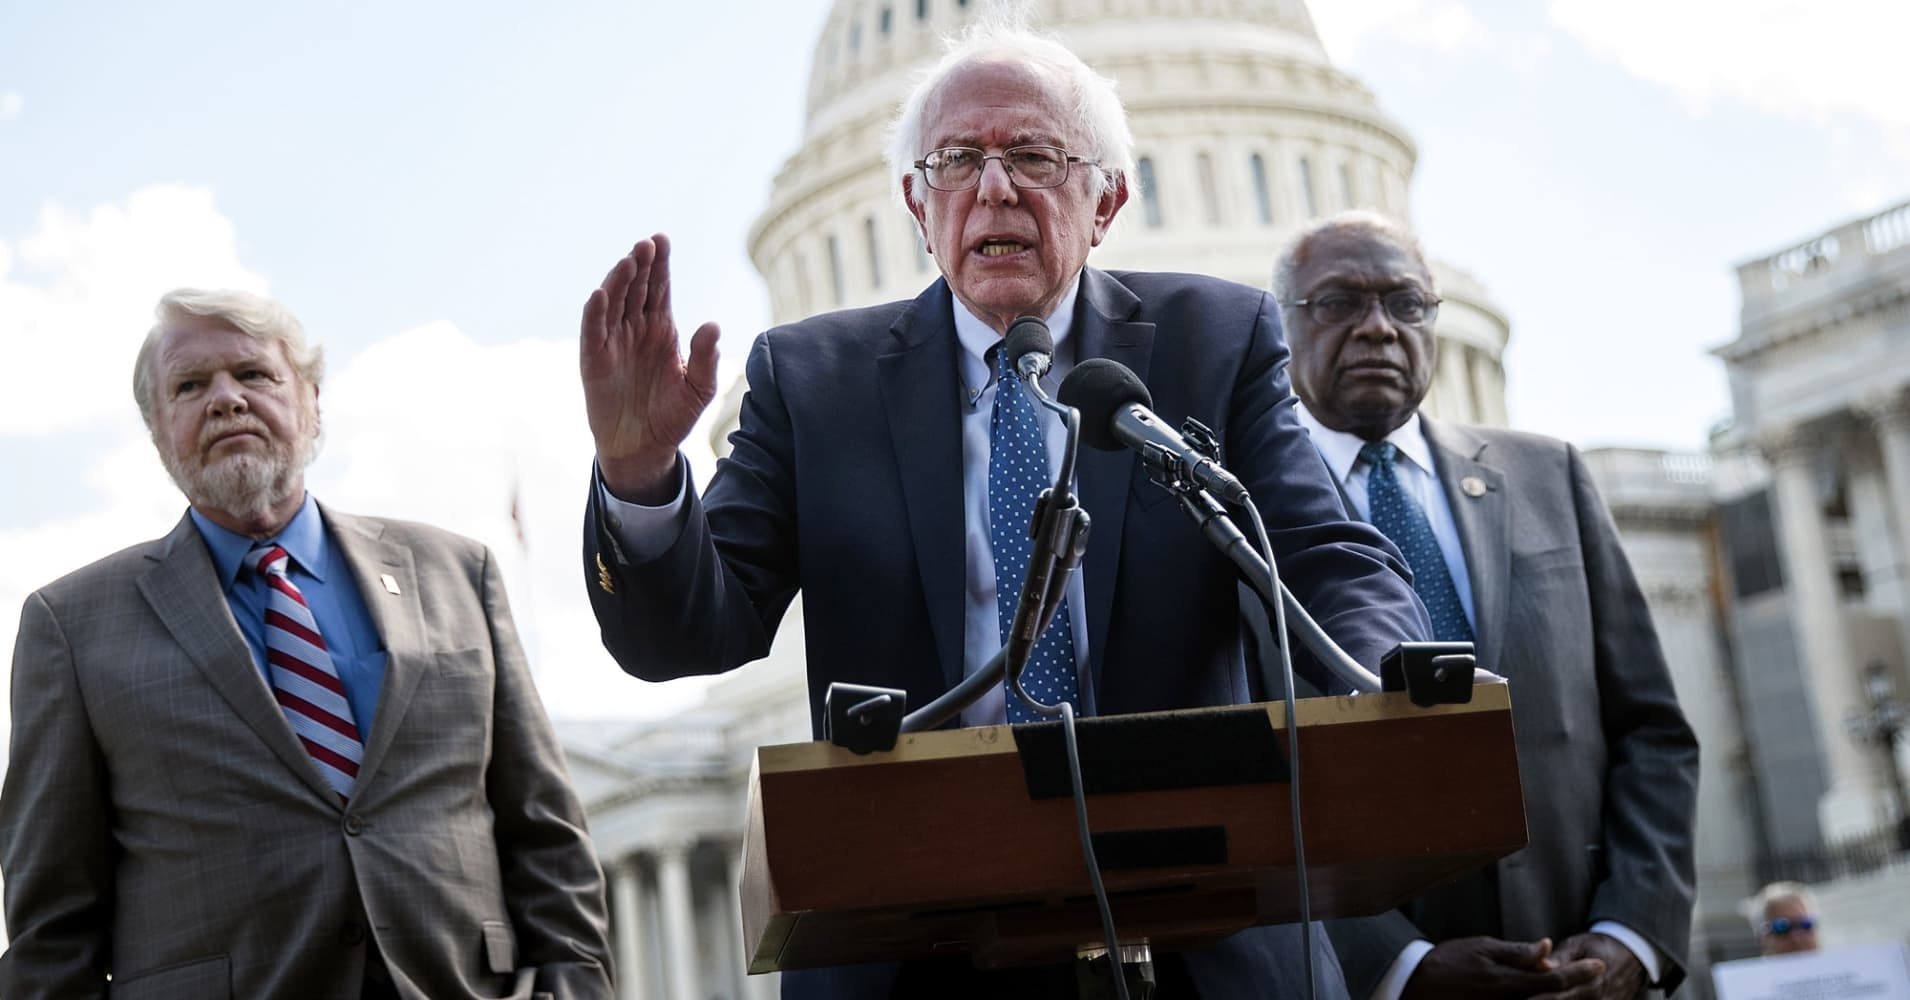 Rep. James Clyburn (R) (D-SC) looks on as U.S. Sen. Bernie Sanders (I-VT) speaks about health care on Capitol Hill, June 26, 2017 in Washington, DC.